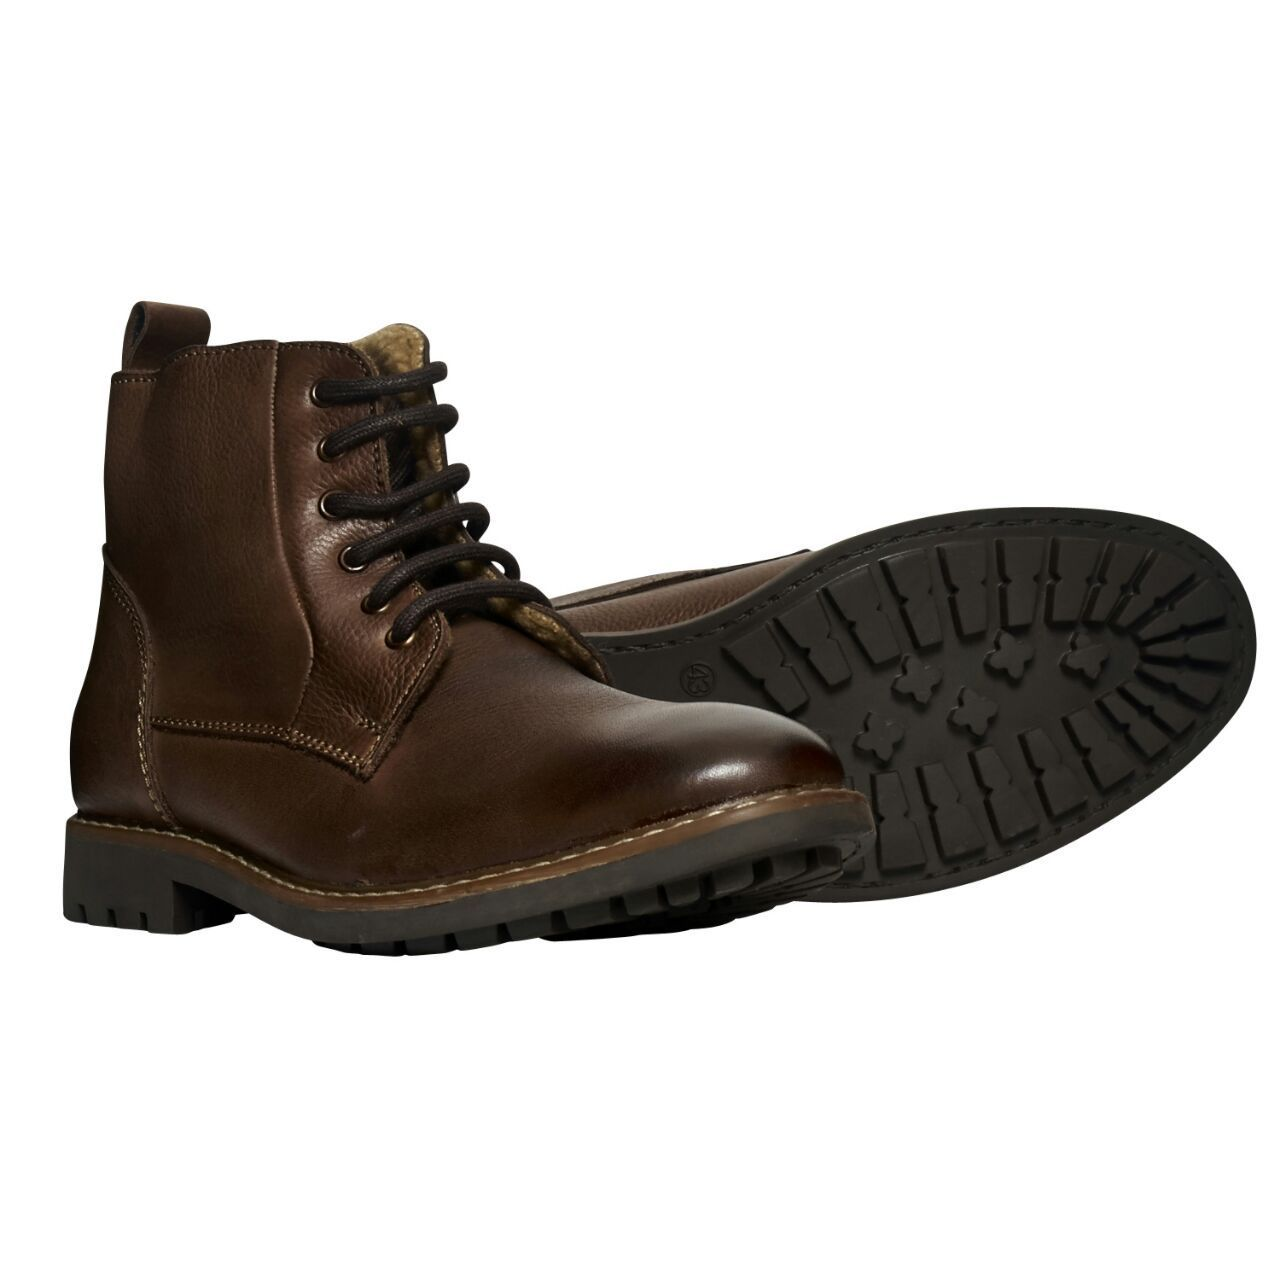 mens leather lace up comfy warm cosy winter ankle boots